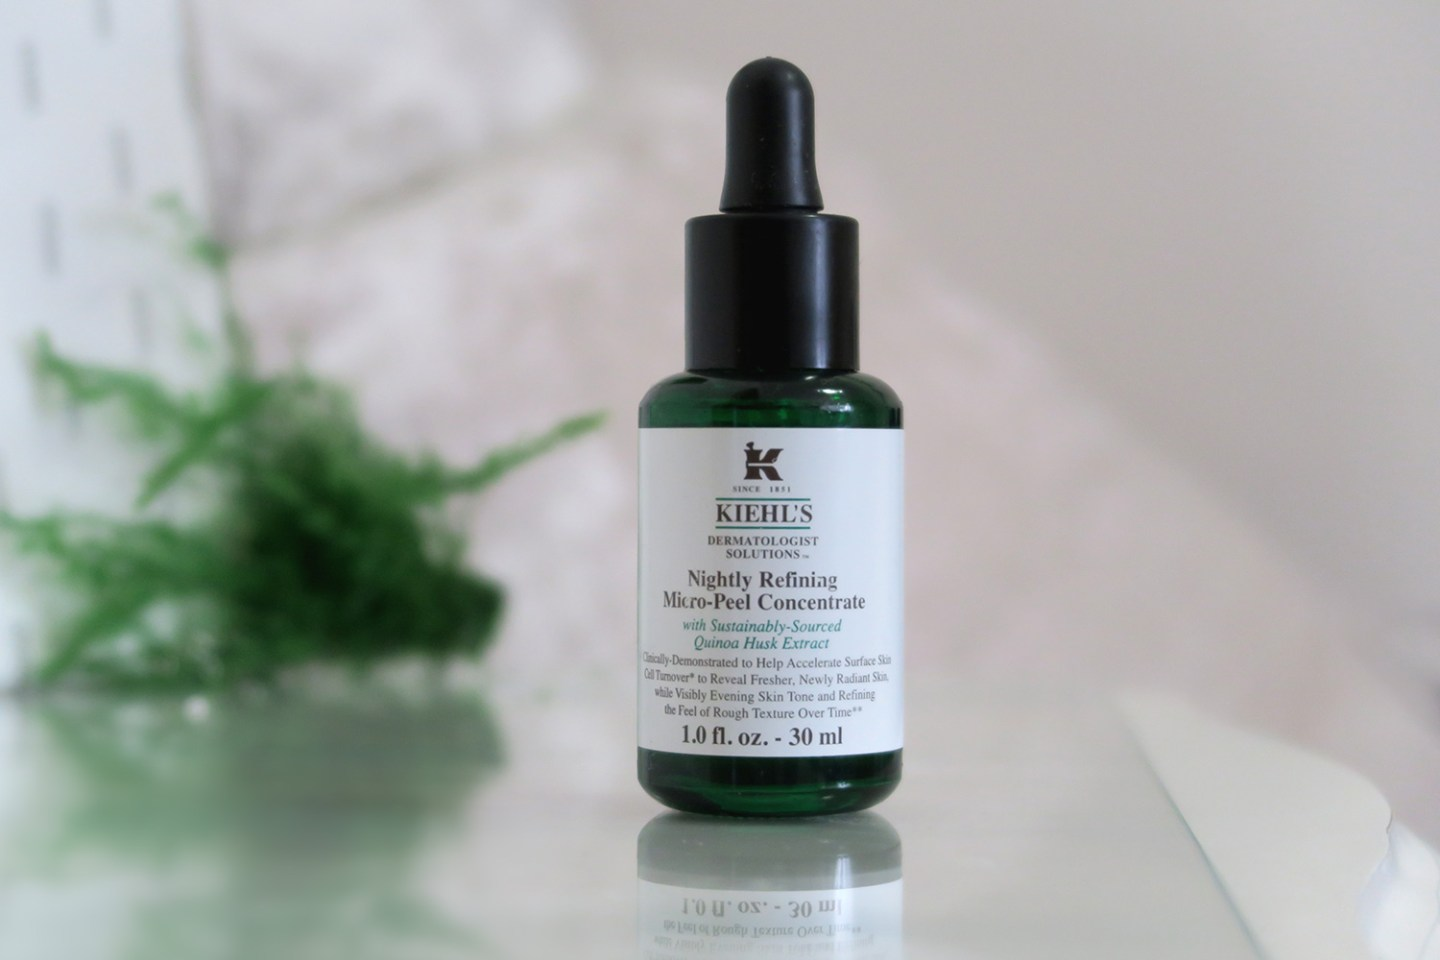 nightly-refining-micro-peel-concentrate-kiehls